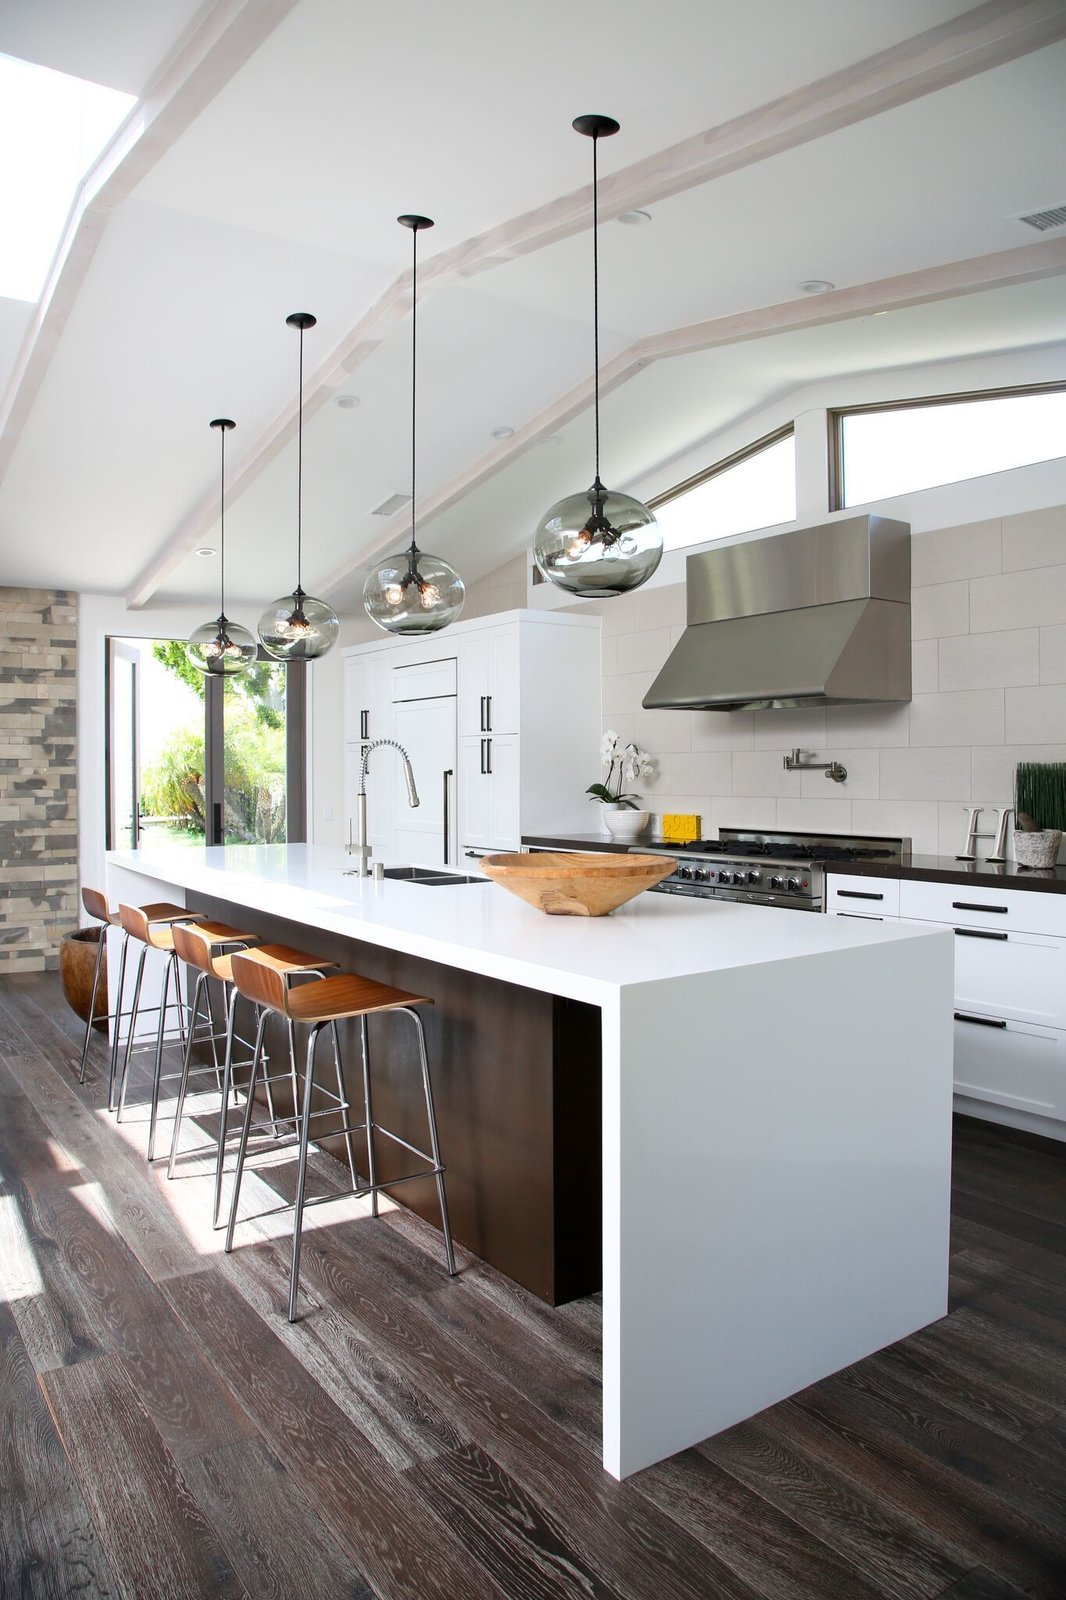 Photo 5 of 10 in 10 Open Kitchen Solutions That Will Get Things Cooking from Kitchen Island Modern Lighting Adds Minimalist Feel to California Home